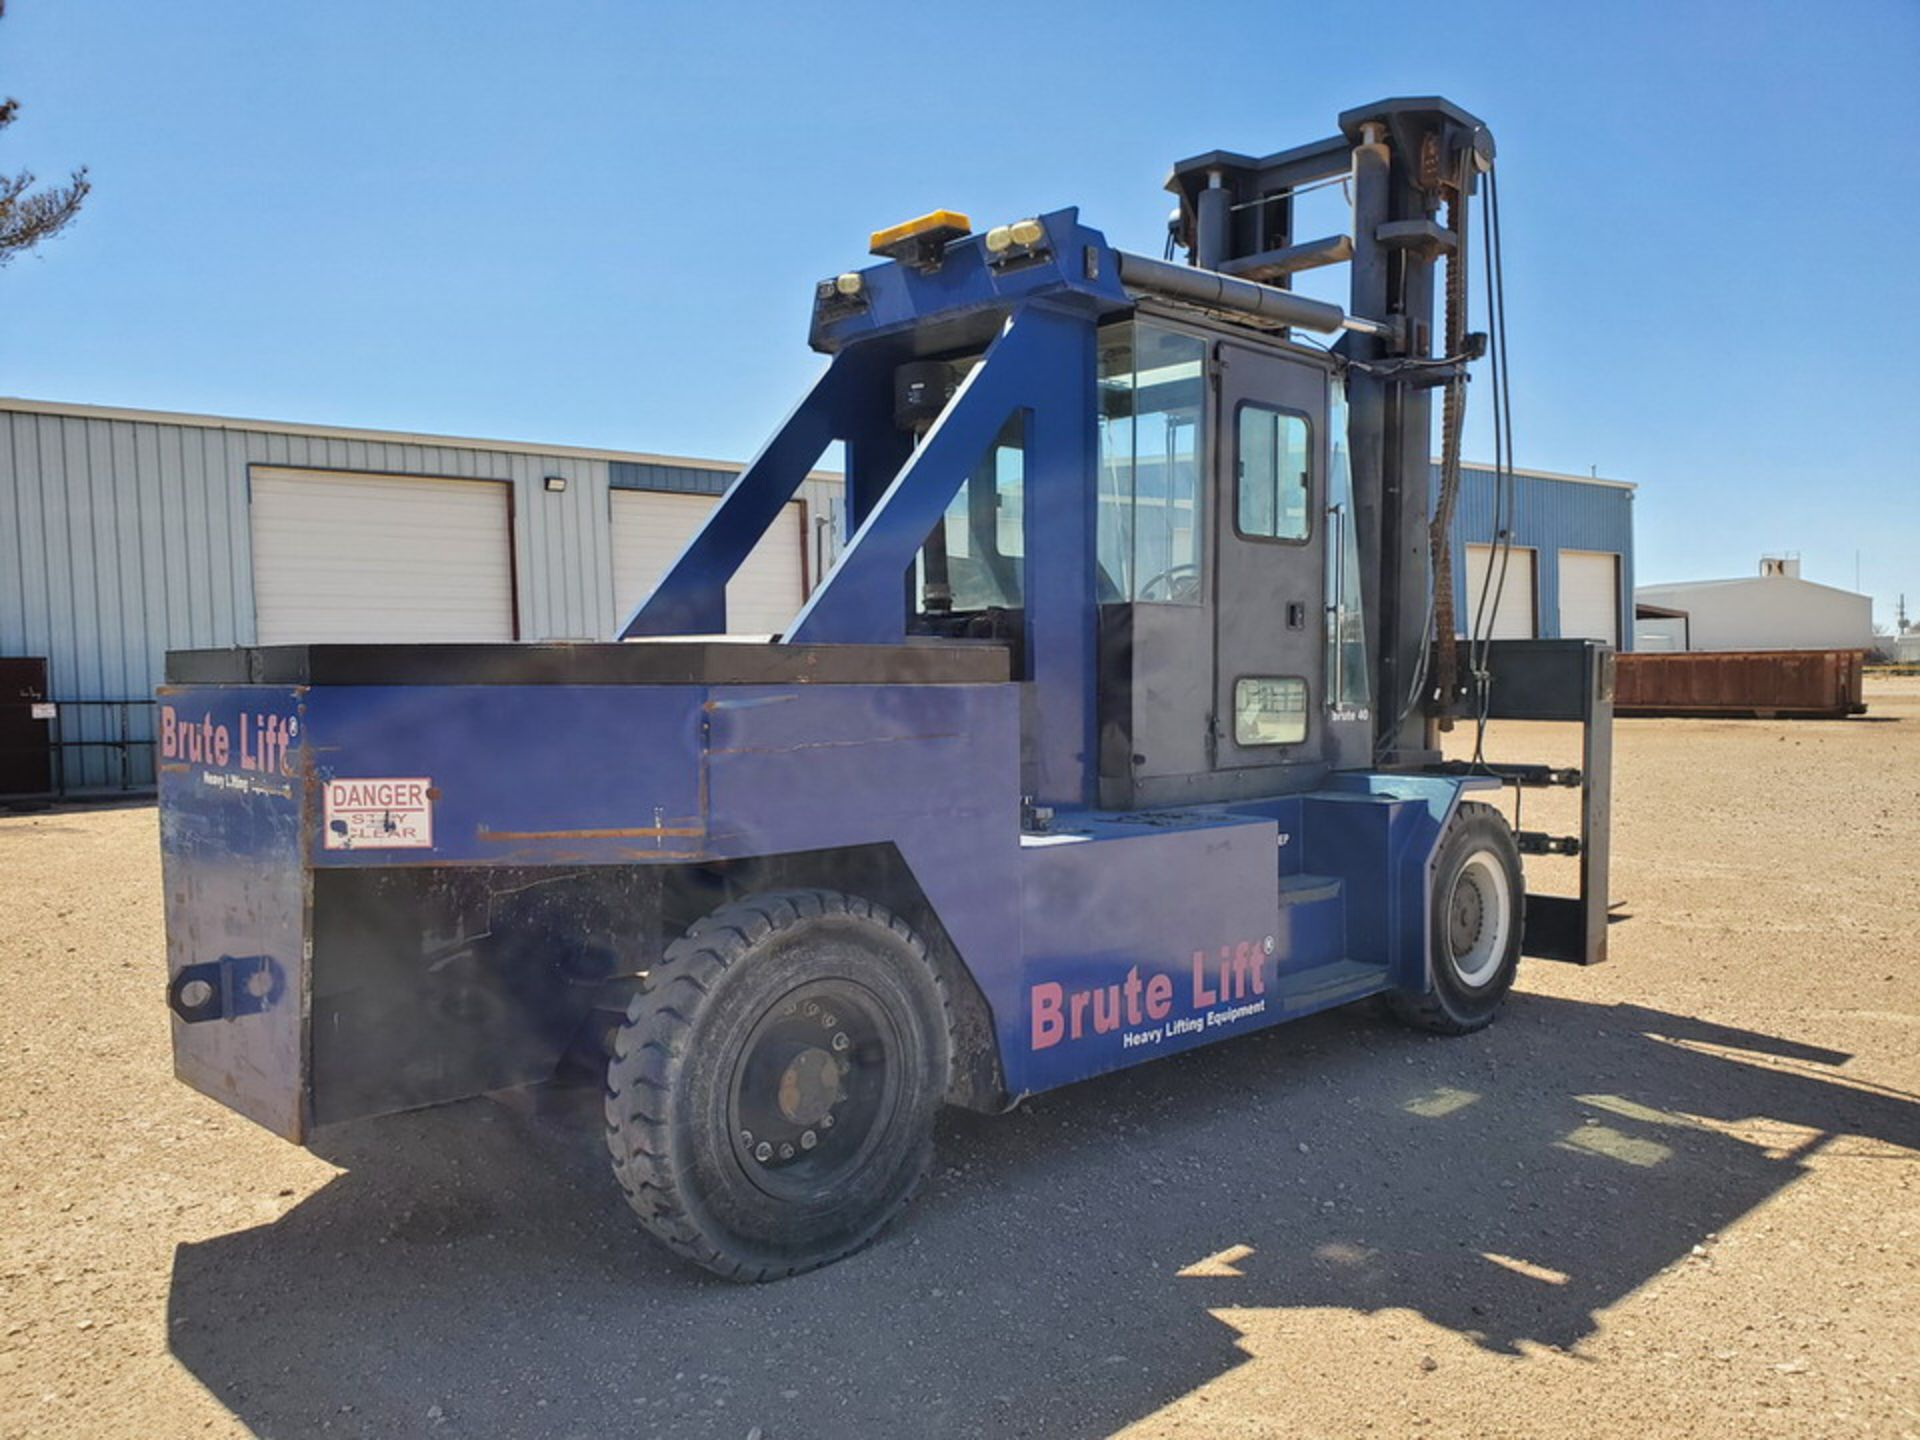 2012 Brute Lift BT40-48 Forklift 40H Cap., Engine Hrs: 3,389.3 - Image 4 of 17